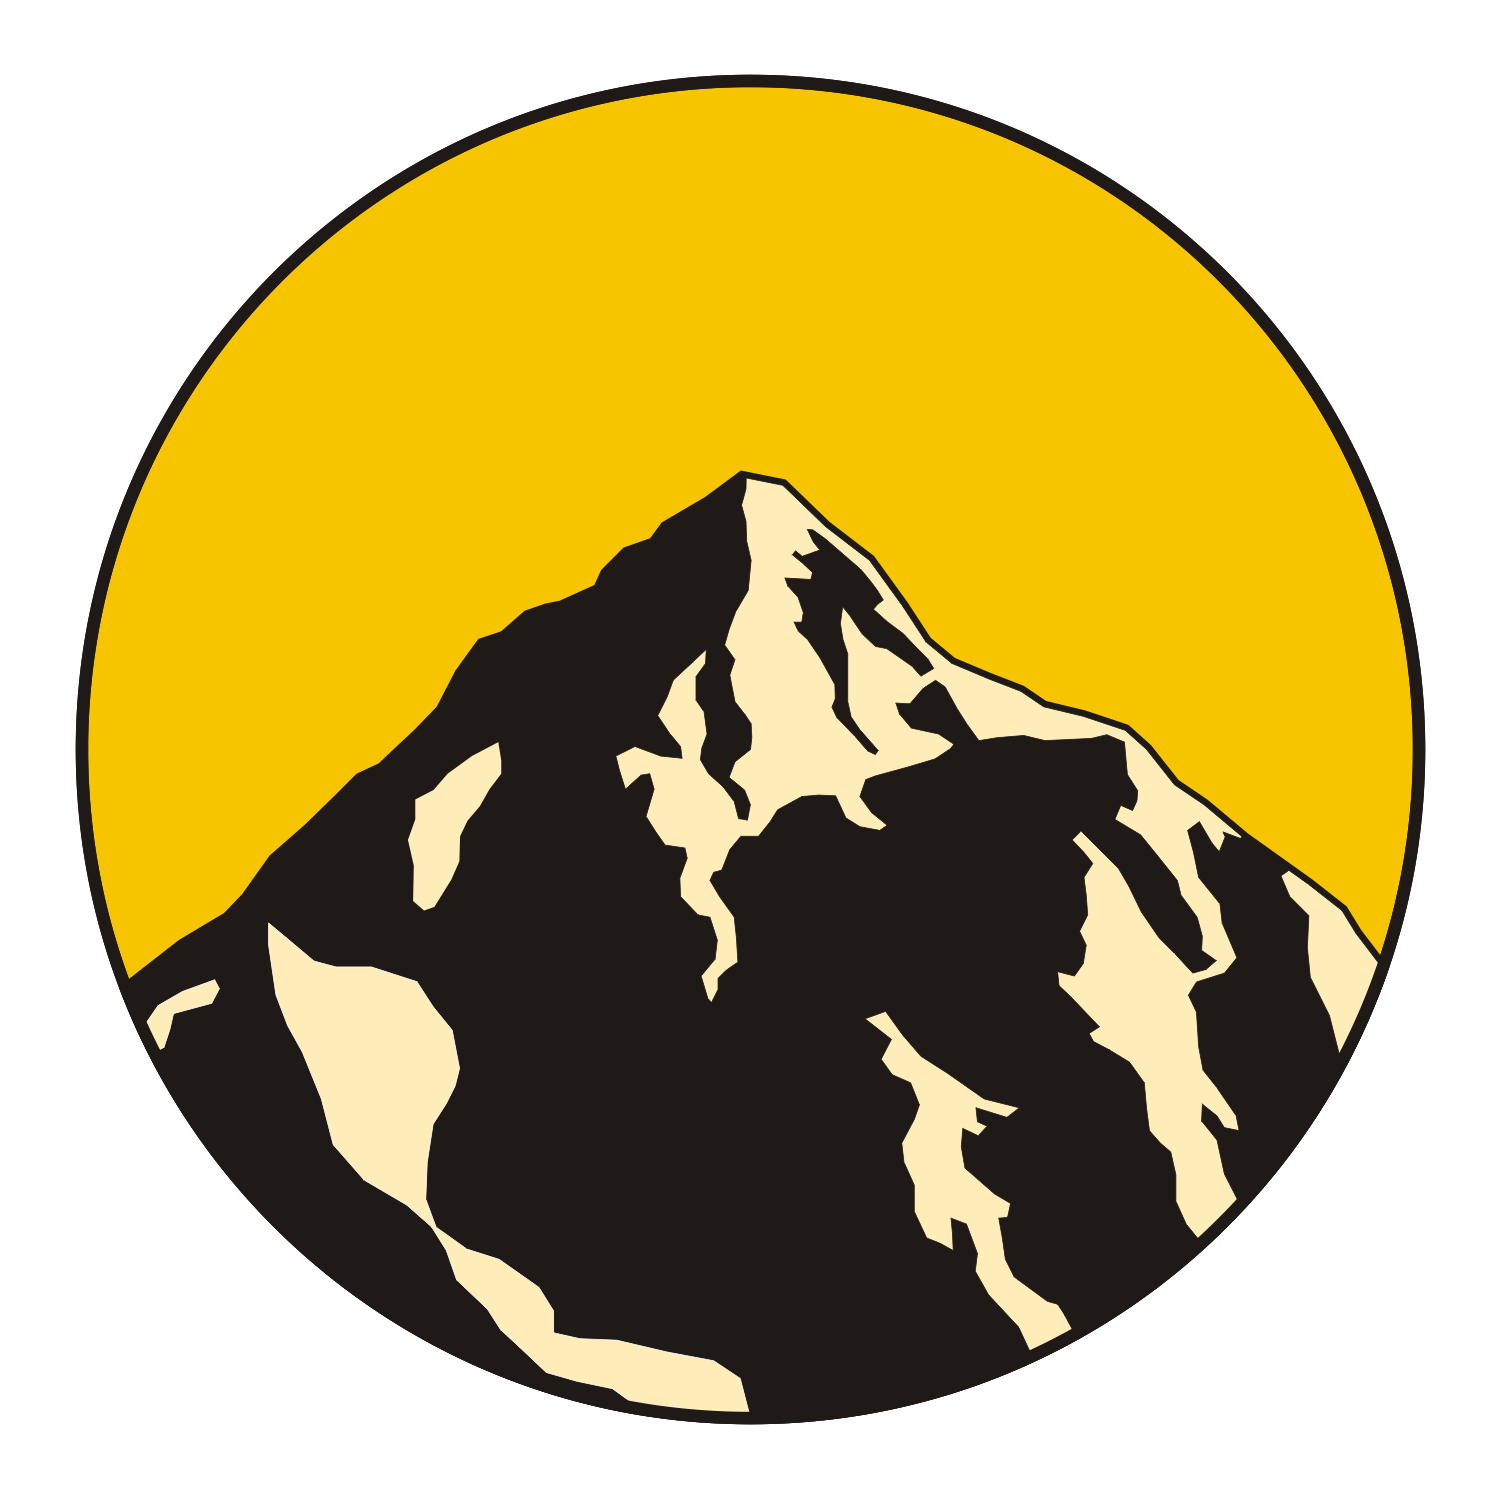 16 Mountain Vector Graphic Images - Honey bee, Mountain ...